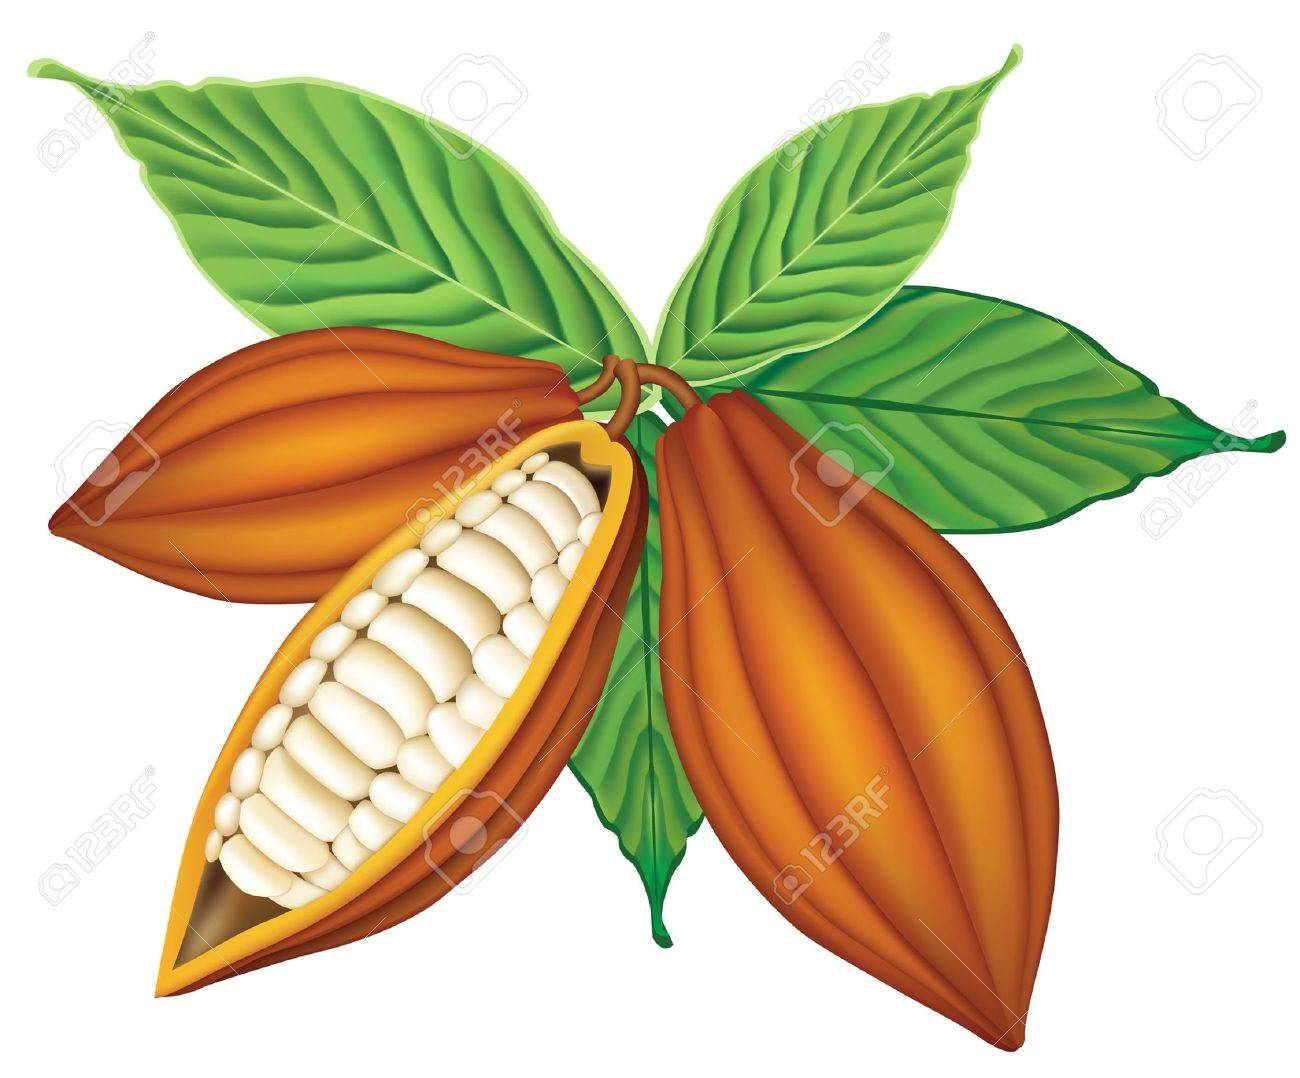 Cocoa beans with green leaves. Stock Vector - 10502083